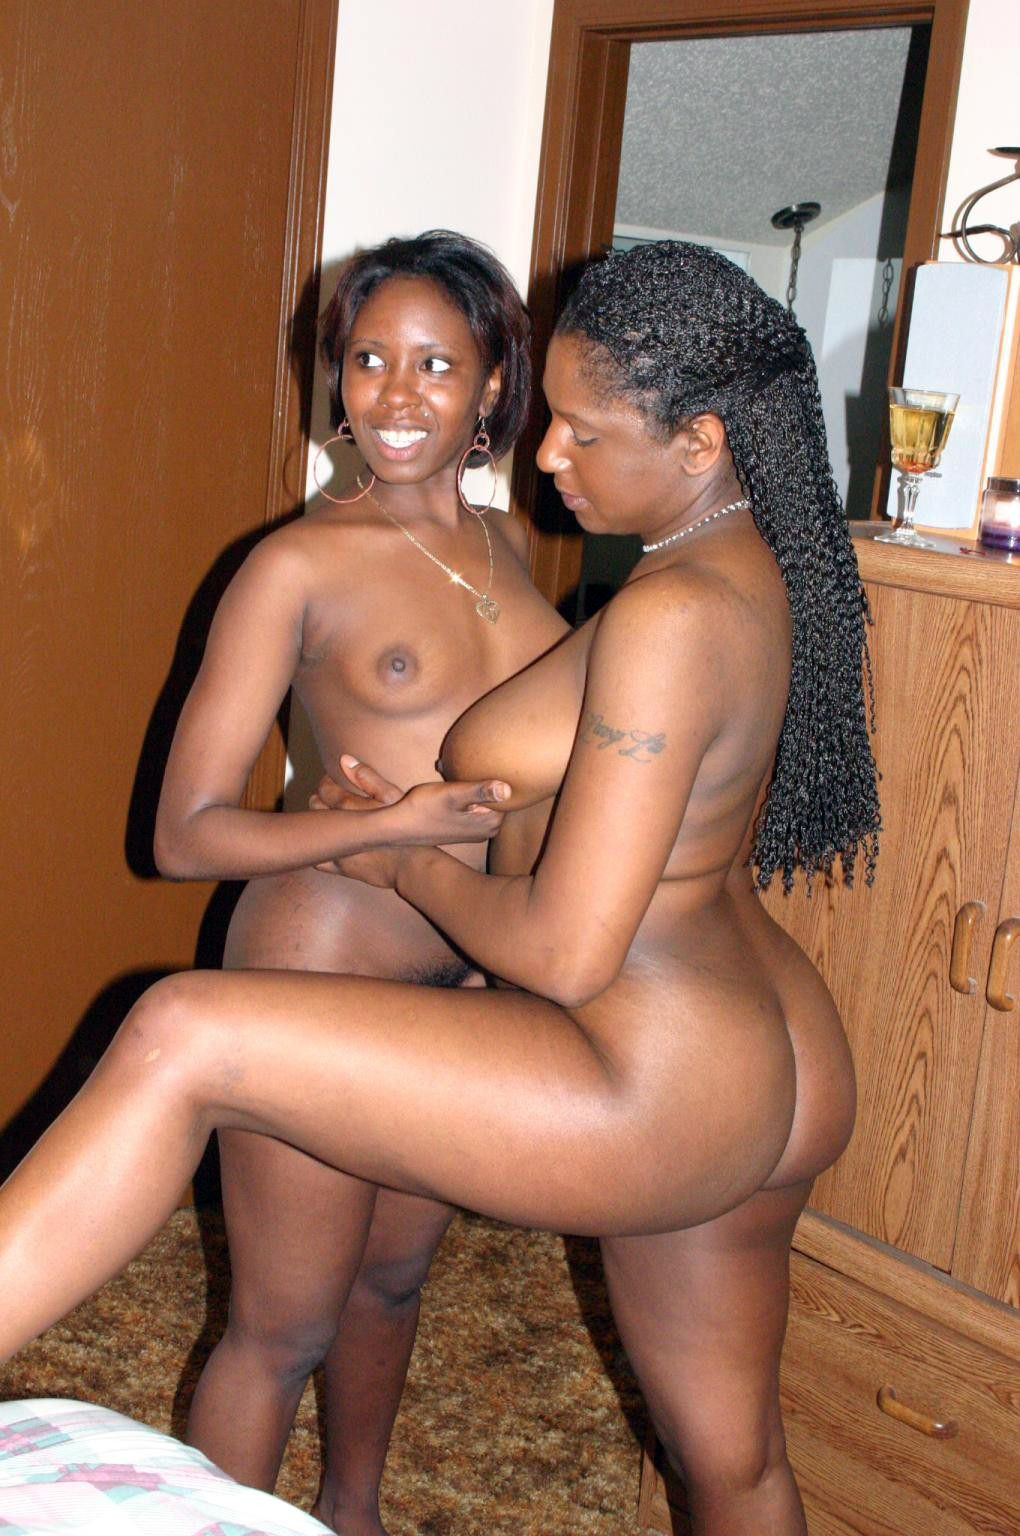 black woman naked photos sex